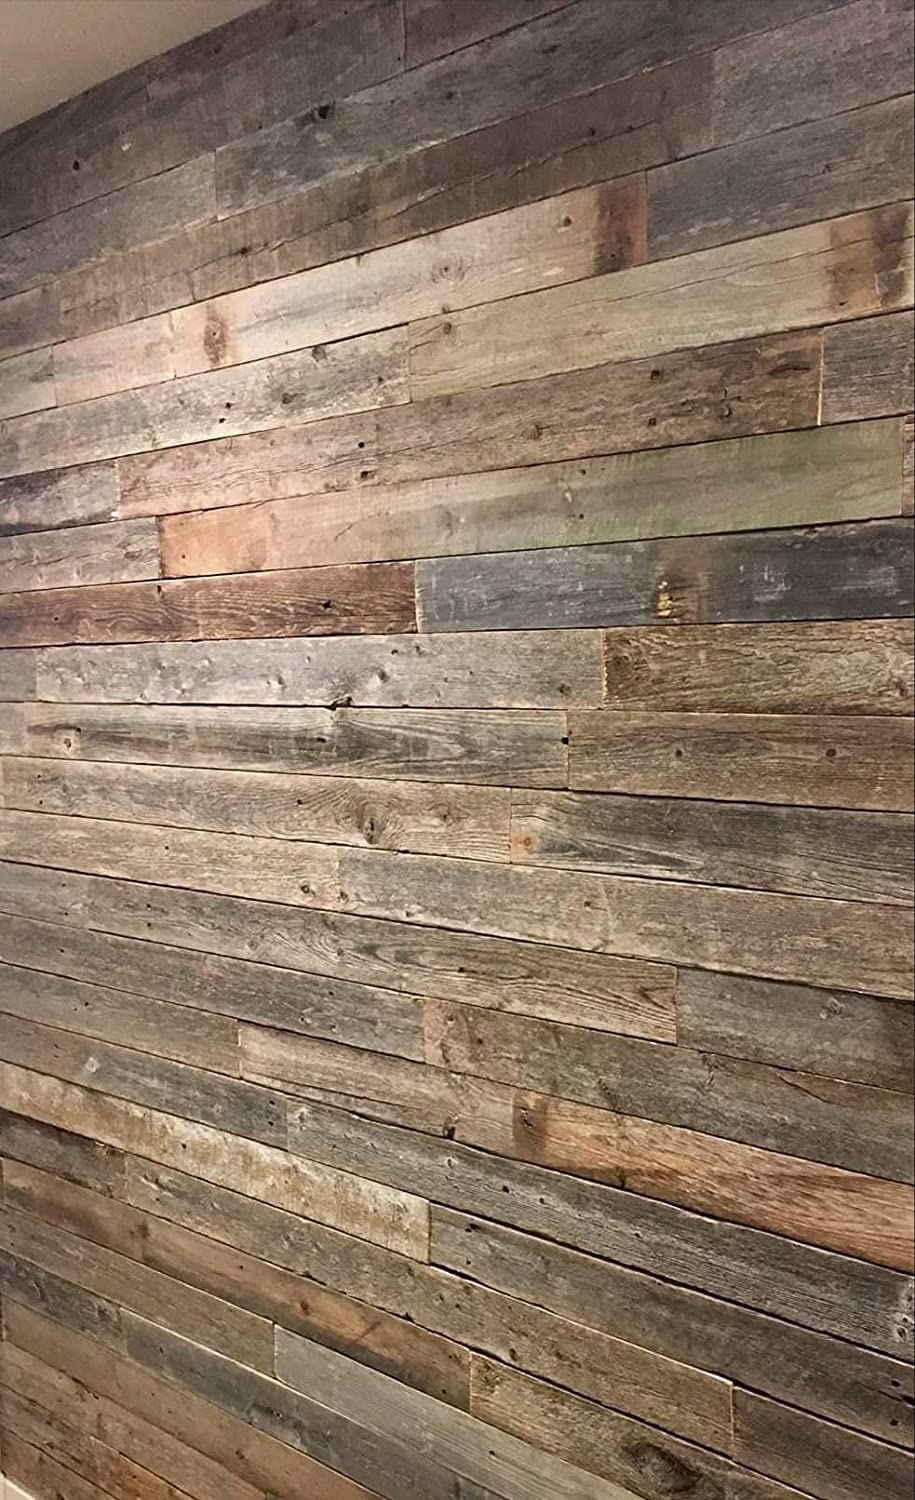 Real Weathered Wood Planks for Walls! Rustic Reclaimed barn Wood Paneling for Accent Walls, Easy Application (23 Square FEET) Rockin' Wood